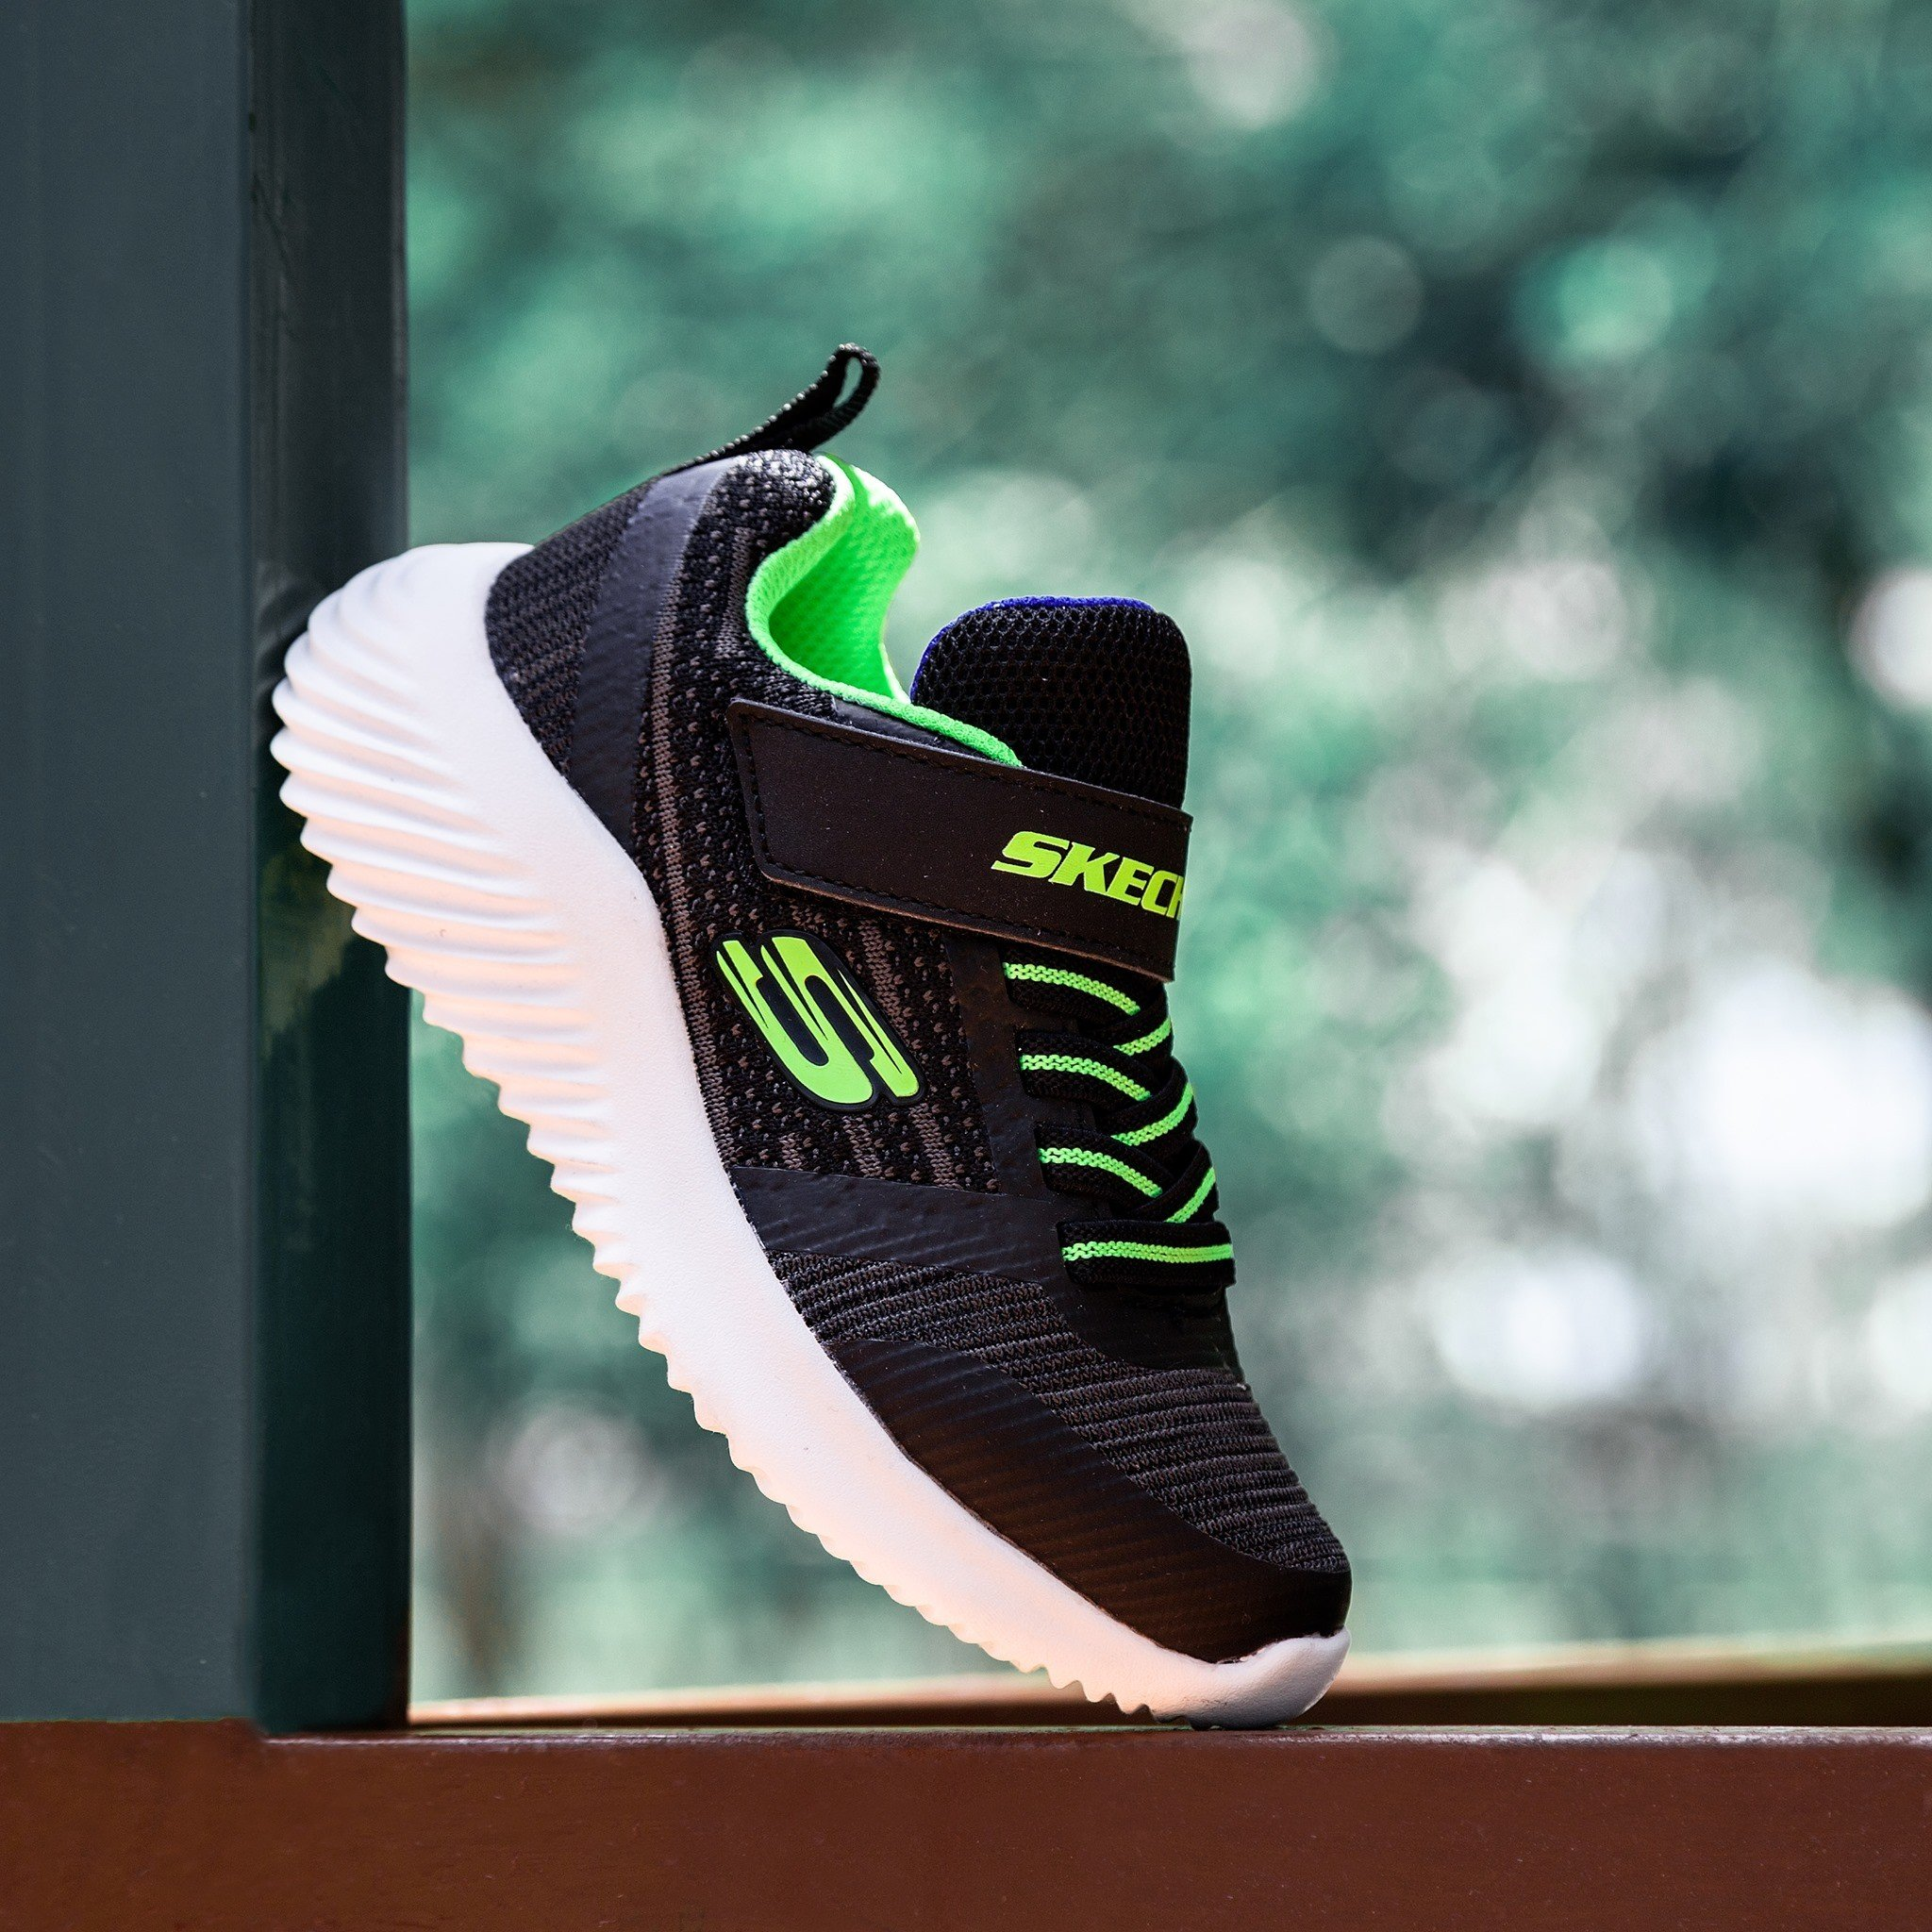 New Arrial Skechers Nam 2020 14